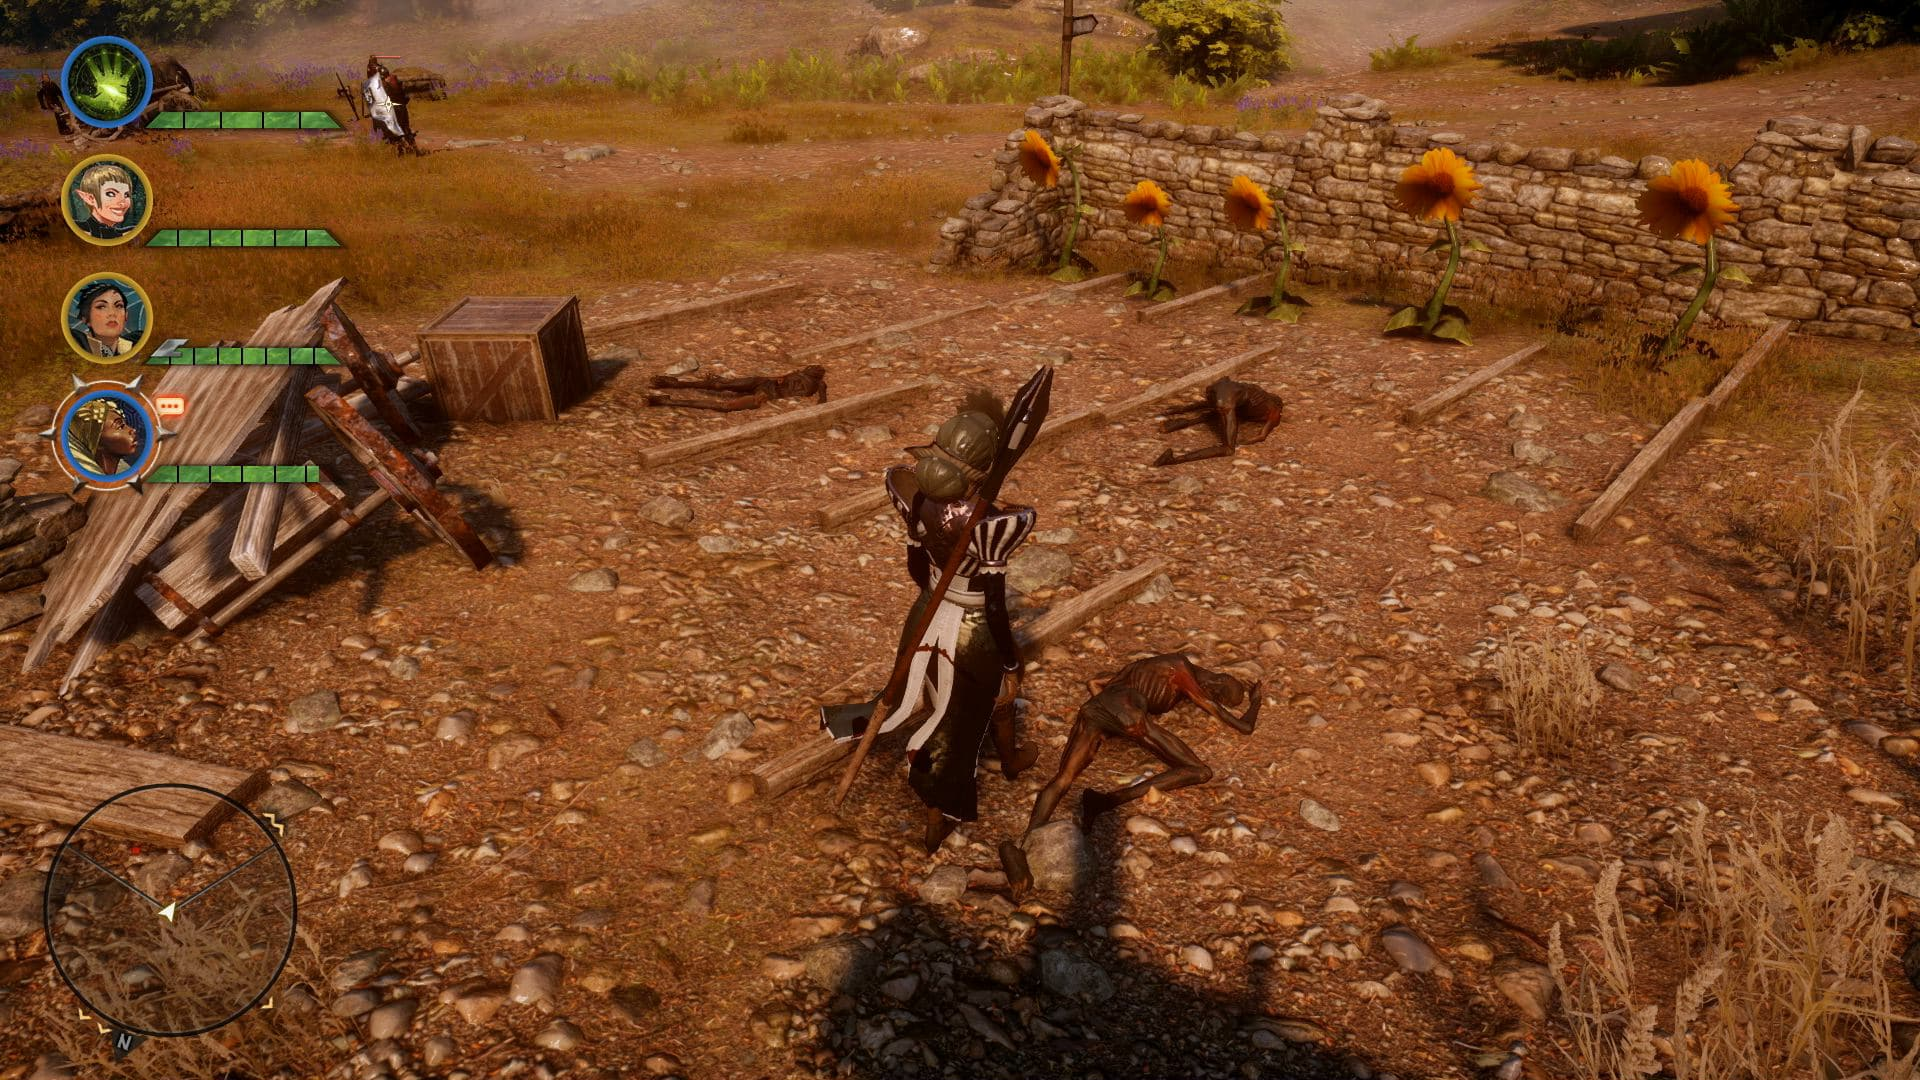 Dragon Age Inquisition incluye guiños a Mass Effect y a Plants vs. Zombies